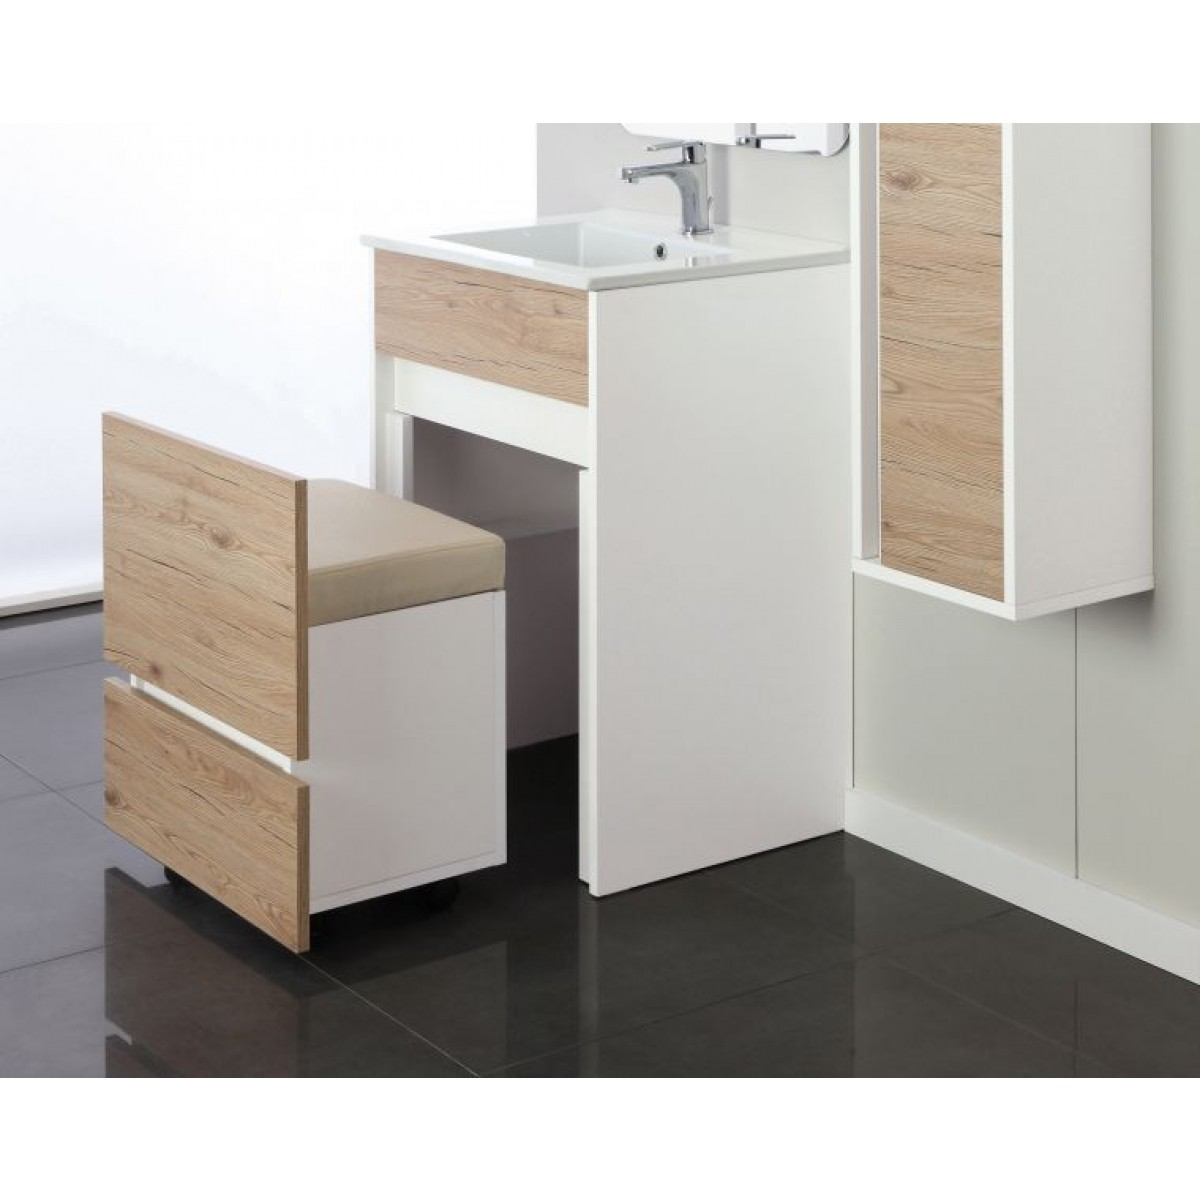 Beautiful mobile bagno sottolavabo photos for Mobile sotto lavabo